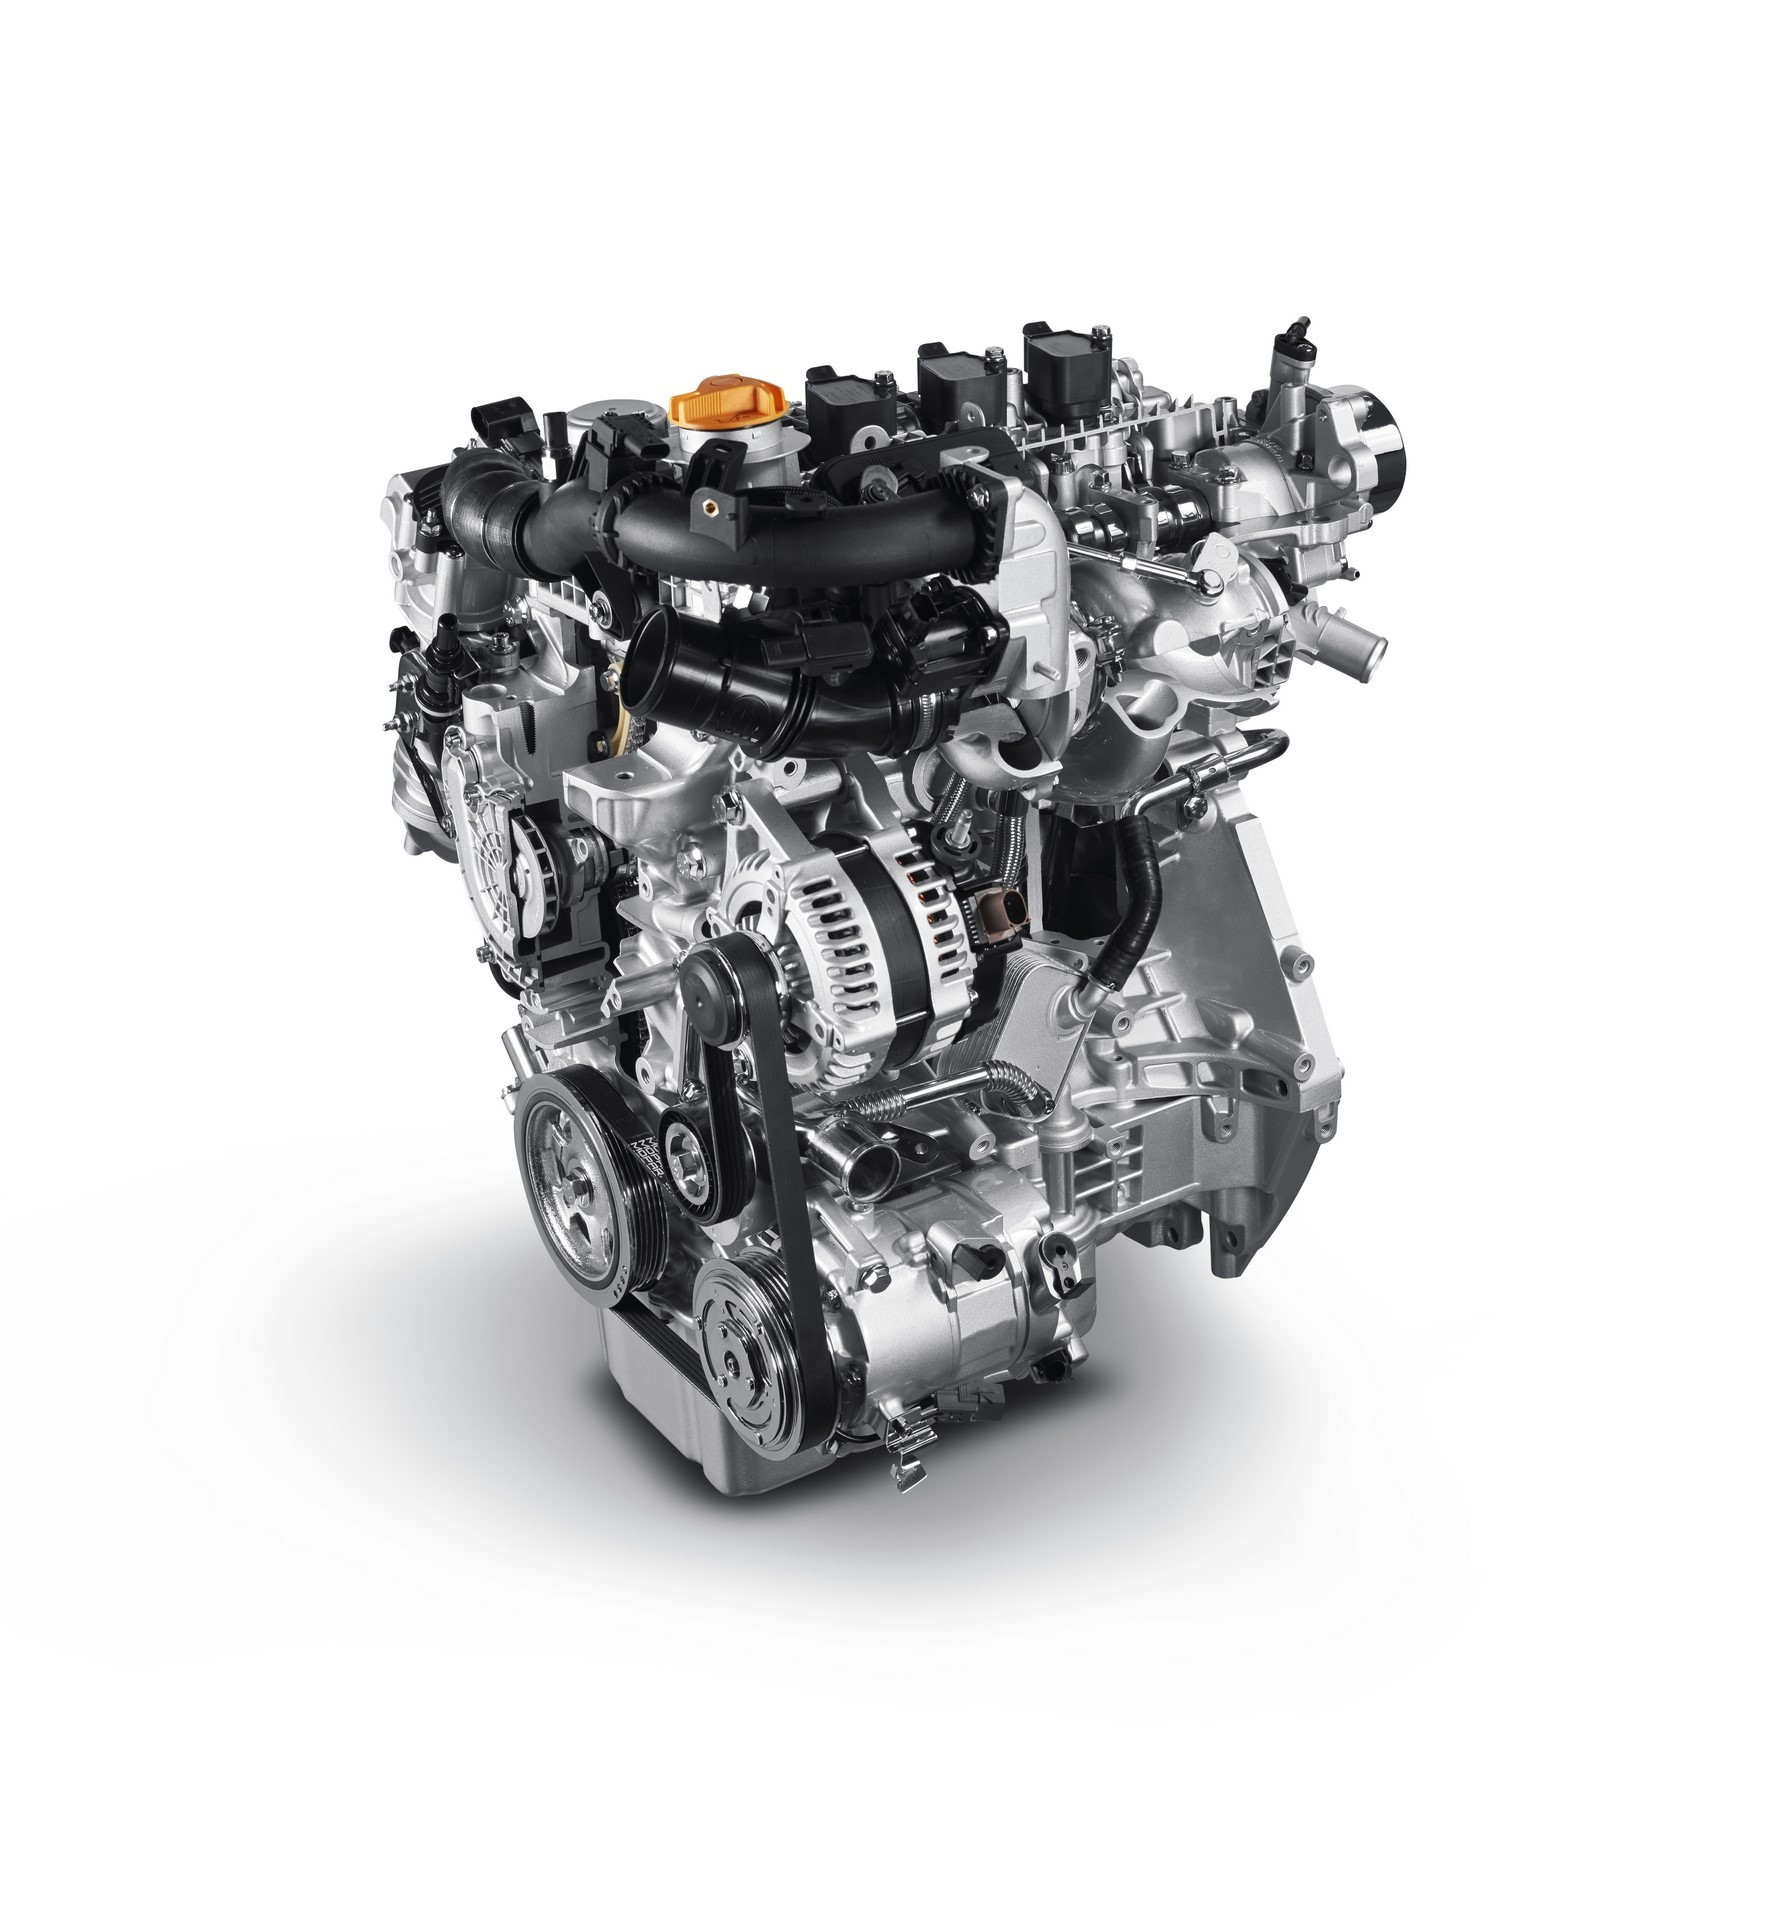 New-13L-Turbo-4-cylinder-150HP_09